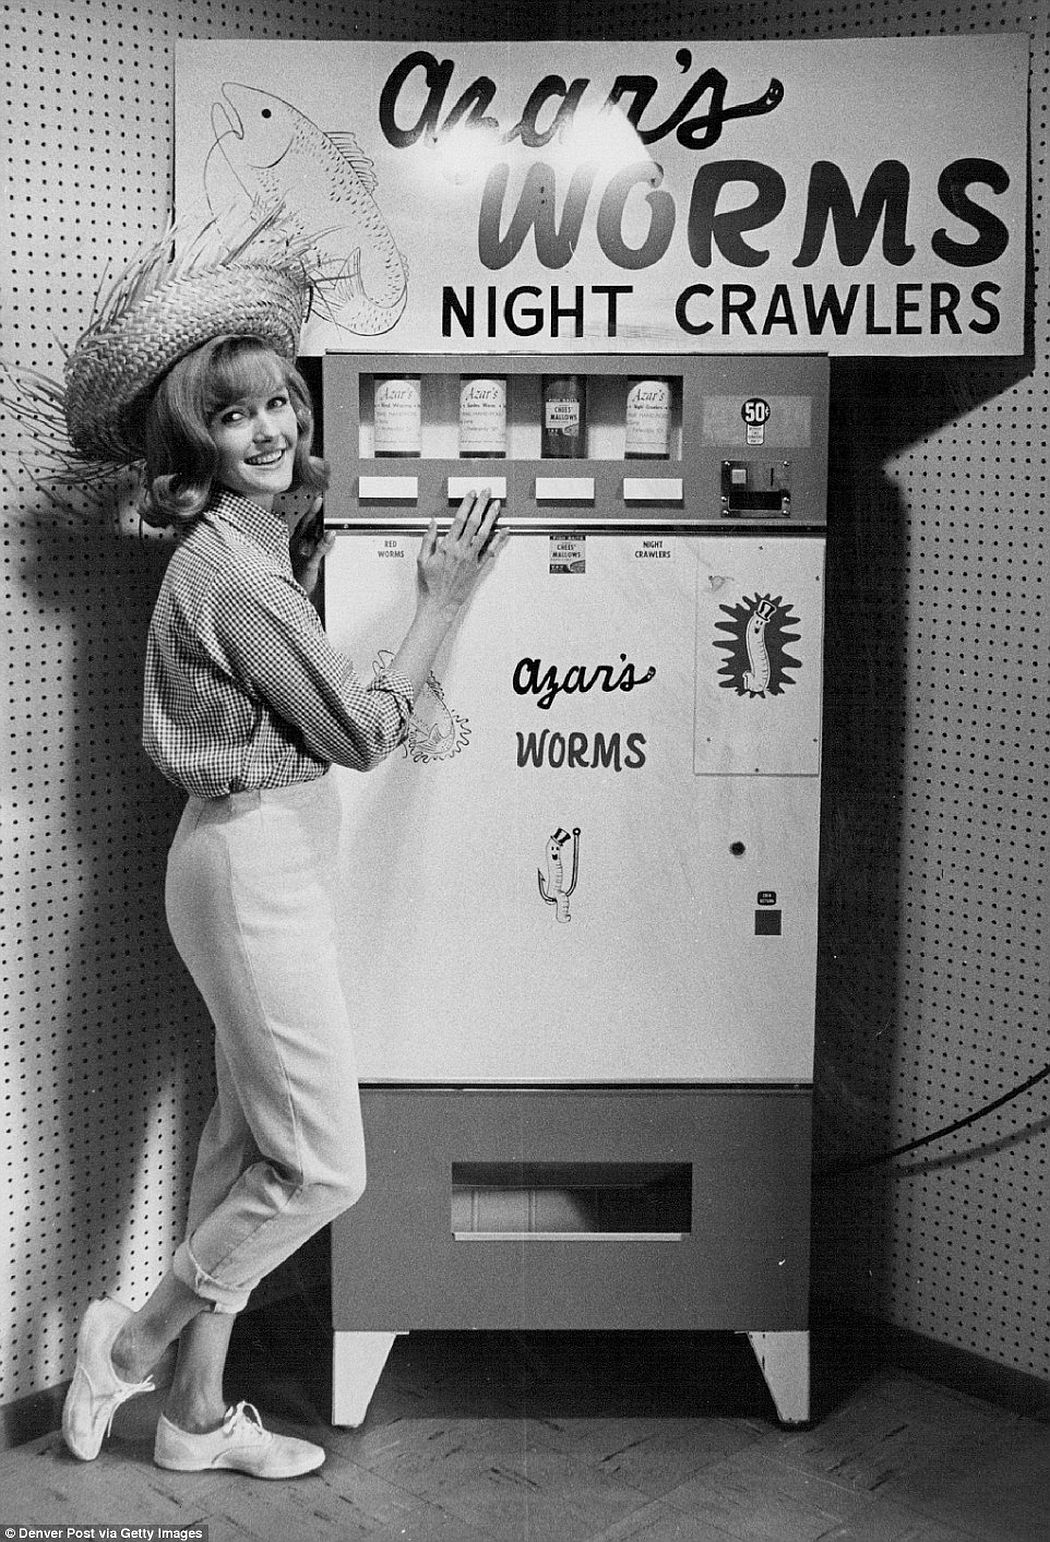 Coffee is one thing but creepy crawlies? This temperature-controlled machine sells worms to be used as bait for fishing at 50 cents a tub, 1965.